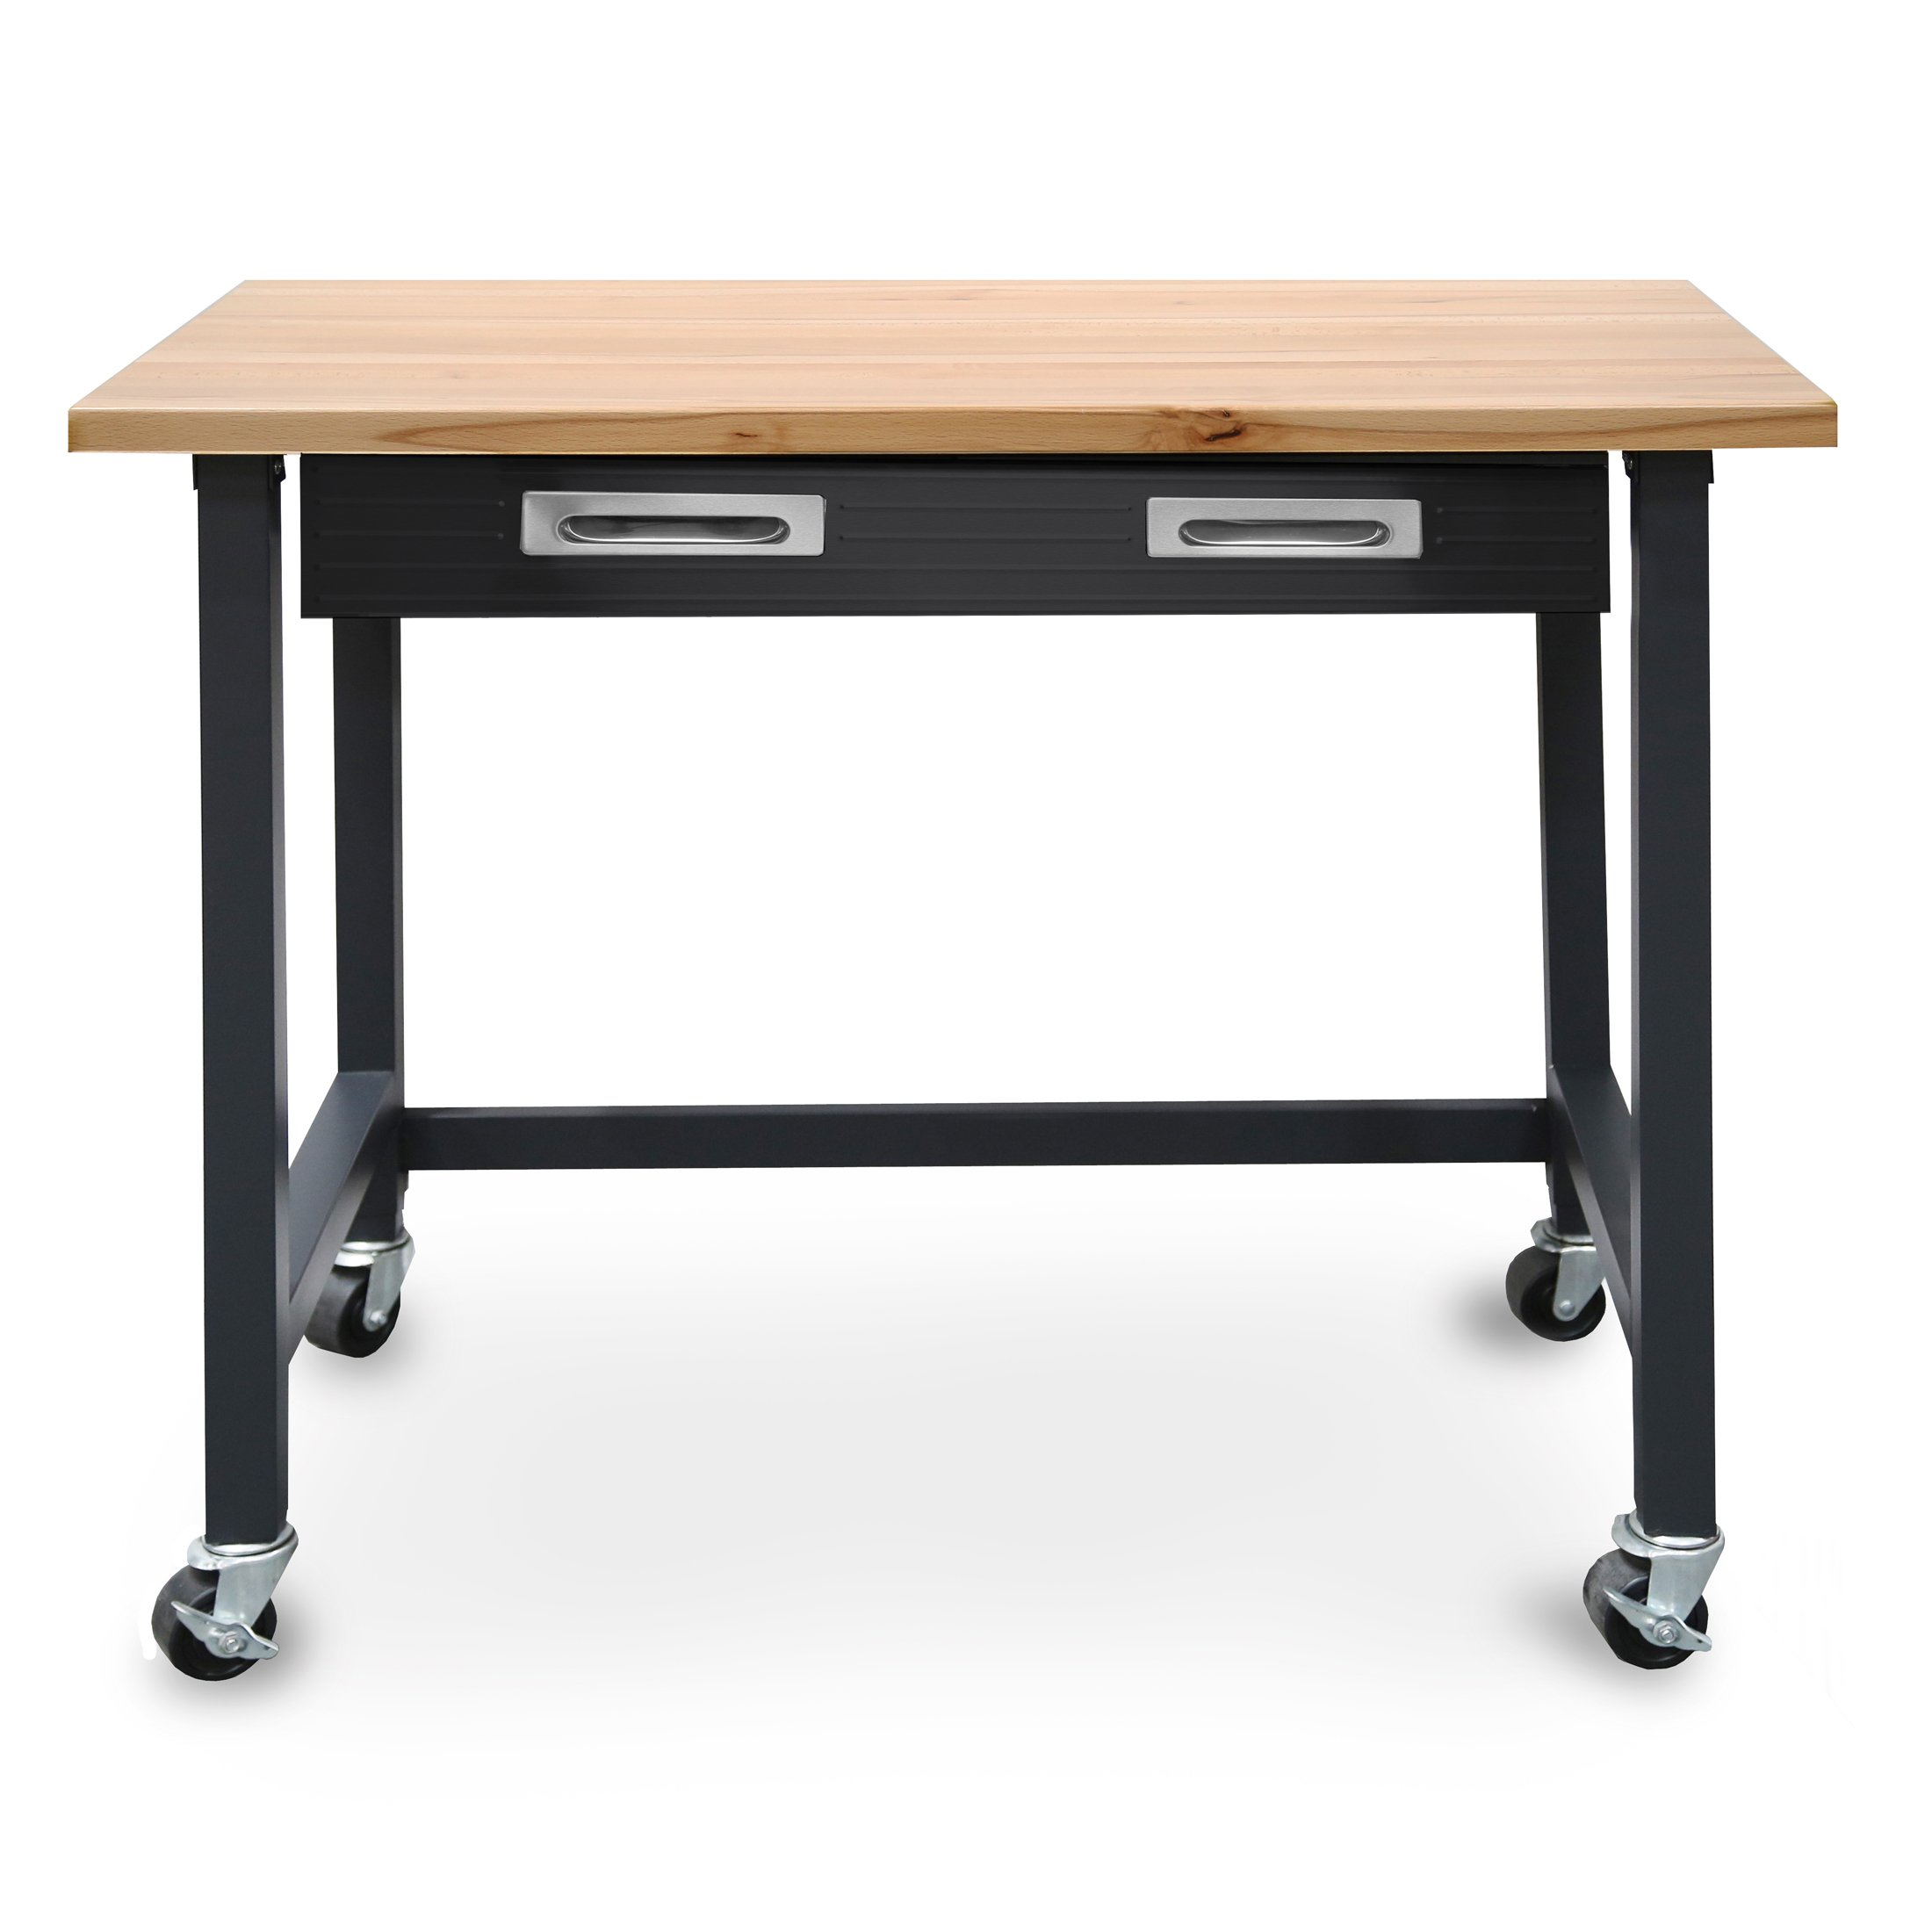 Seville Classics UltraGraphite Wood Top Workbench on Wheels with Organizer Drawer, 48'' W x 24.7'' D x 37.4'' H